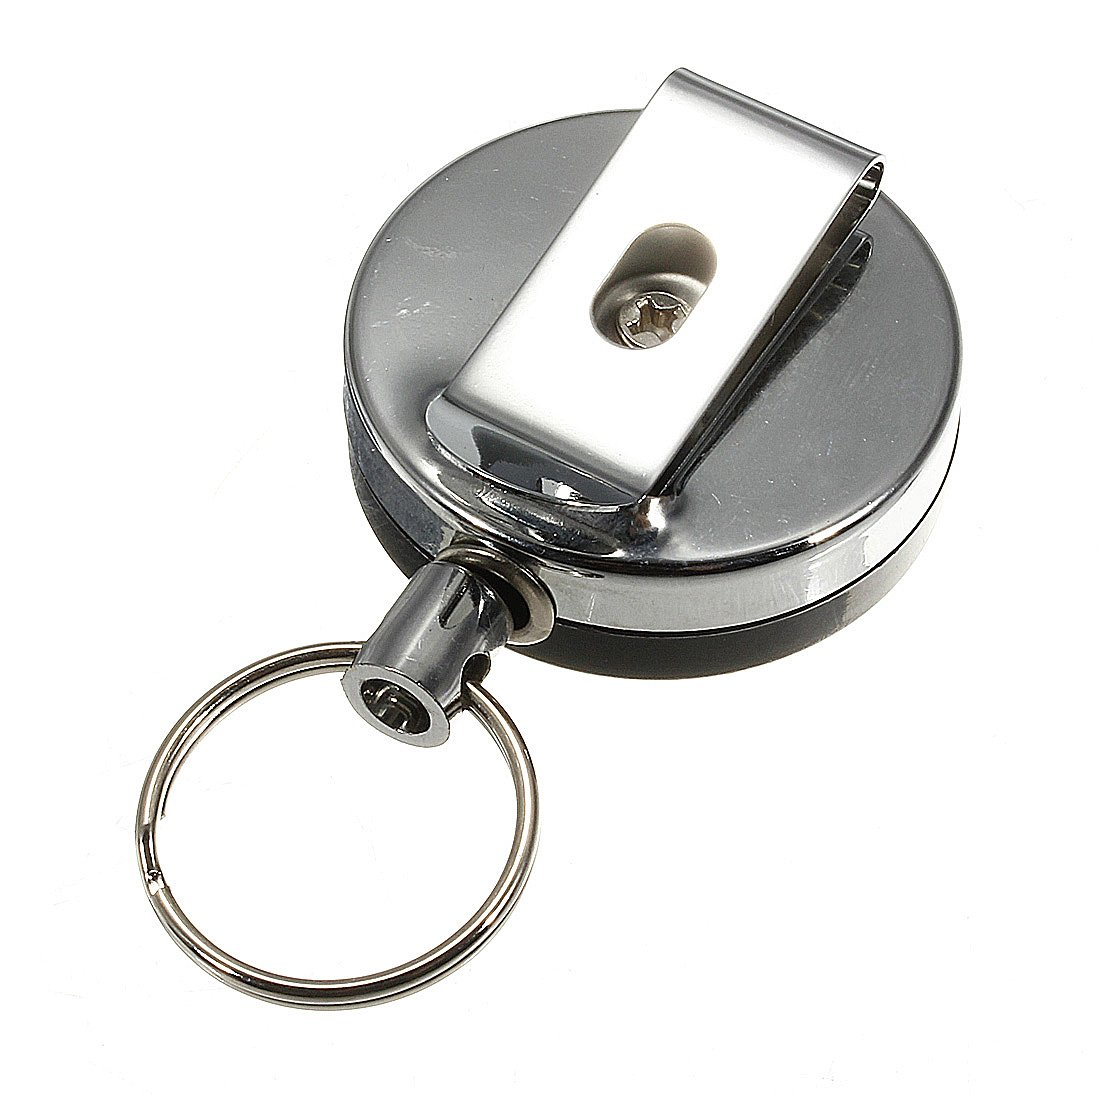 Retractable Steel Recoil Ring Key Chain Holder Clip Bustrill Co. LTD